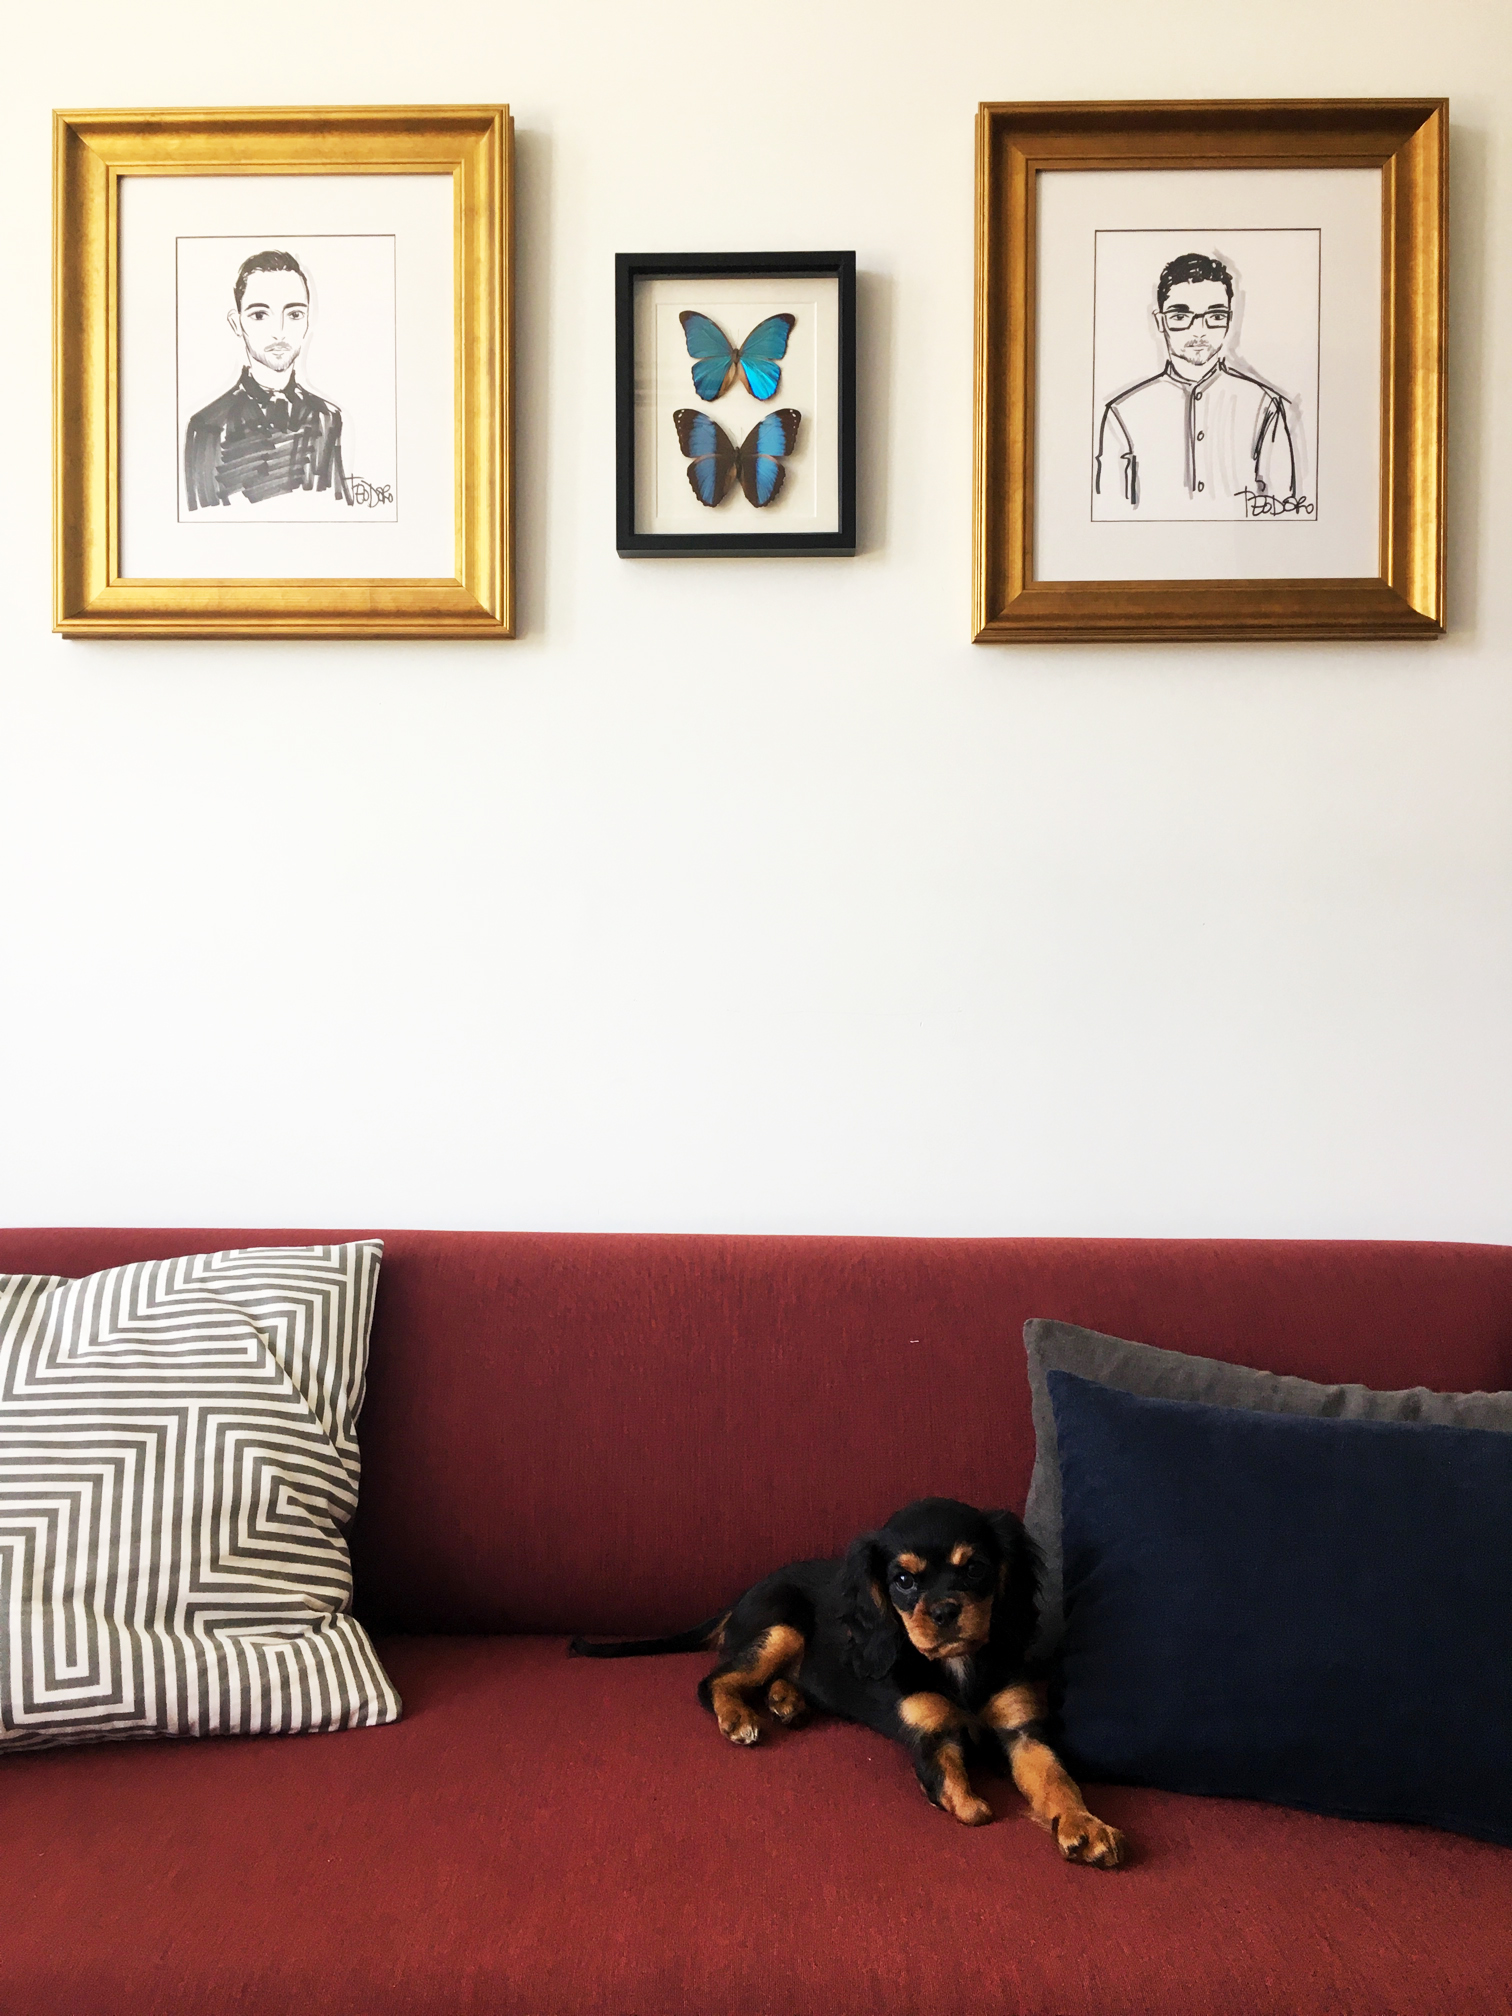 Portrait Sketched in classic gold frames above couch in living room with puppy and framed butterflies